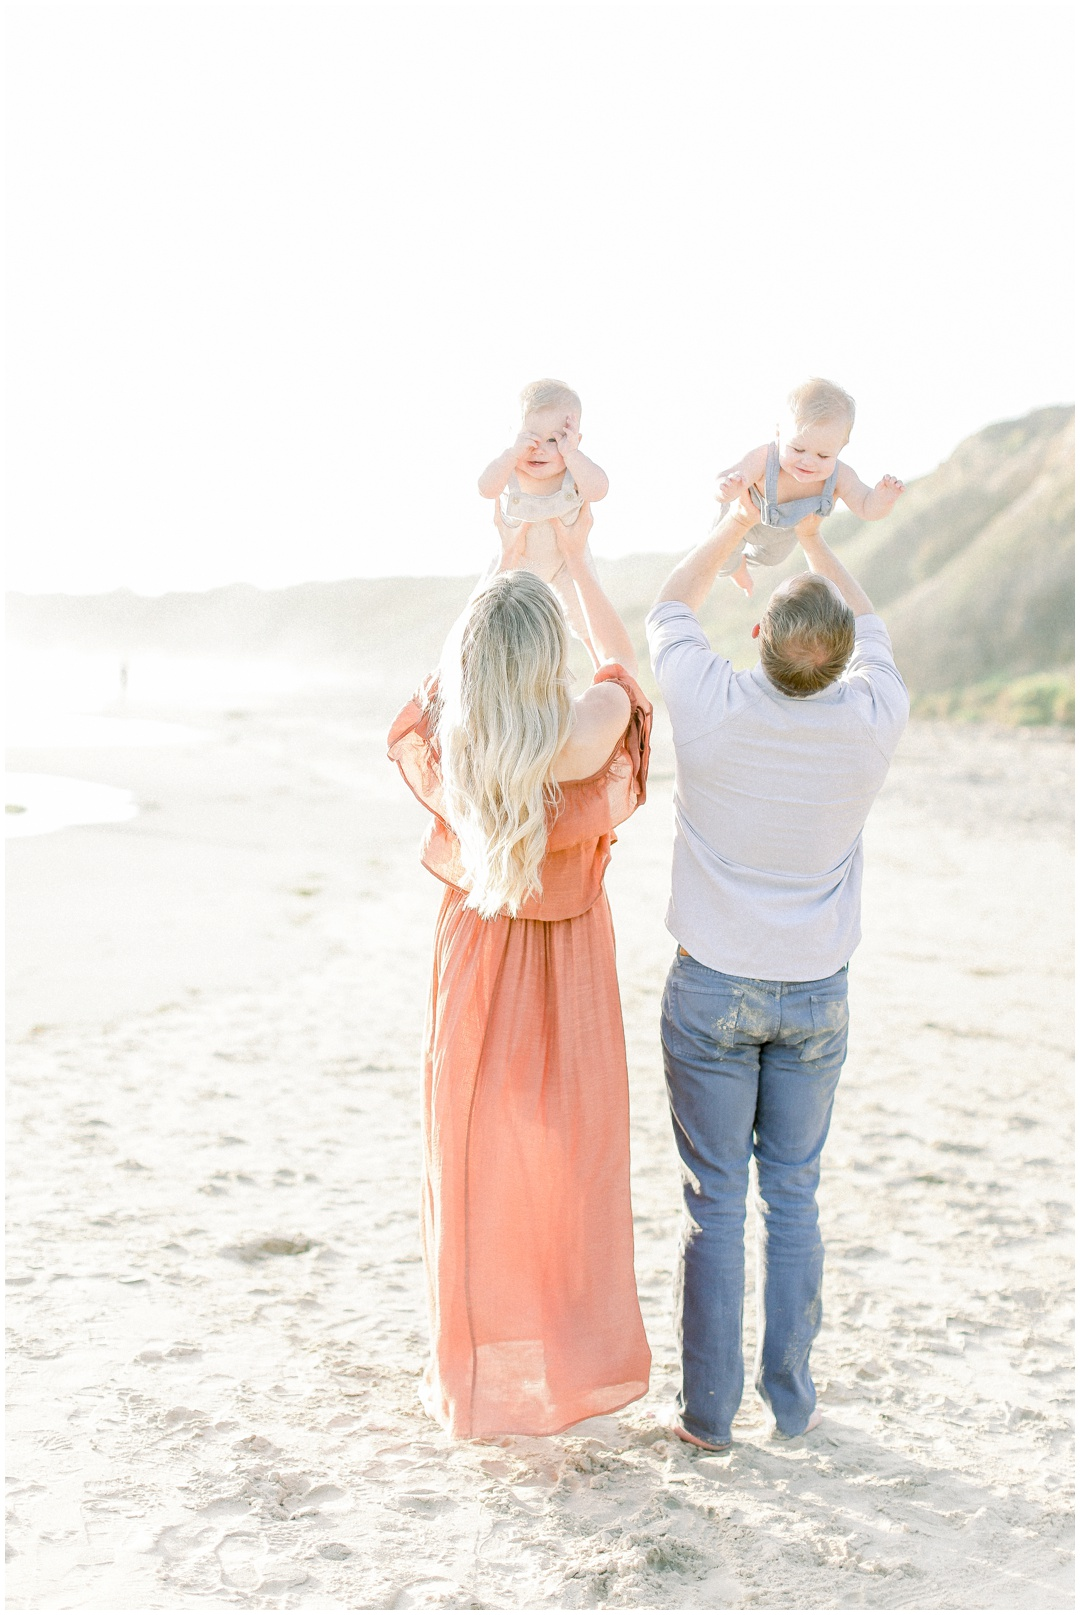 Newport_Beach_Newborn_Light_Airy_Natural_Photographer_Newport_Beach_Photographer_Orange_County_Family_Photographer_Cori_Kleckner_Photography_Huntington_Beach_Photographer_Family_OC_Newborn_Kelly_Bandak_Nik_Bandak__3529.jpg